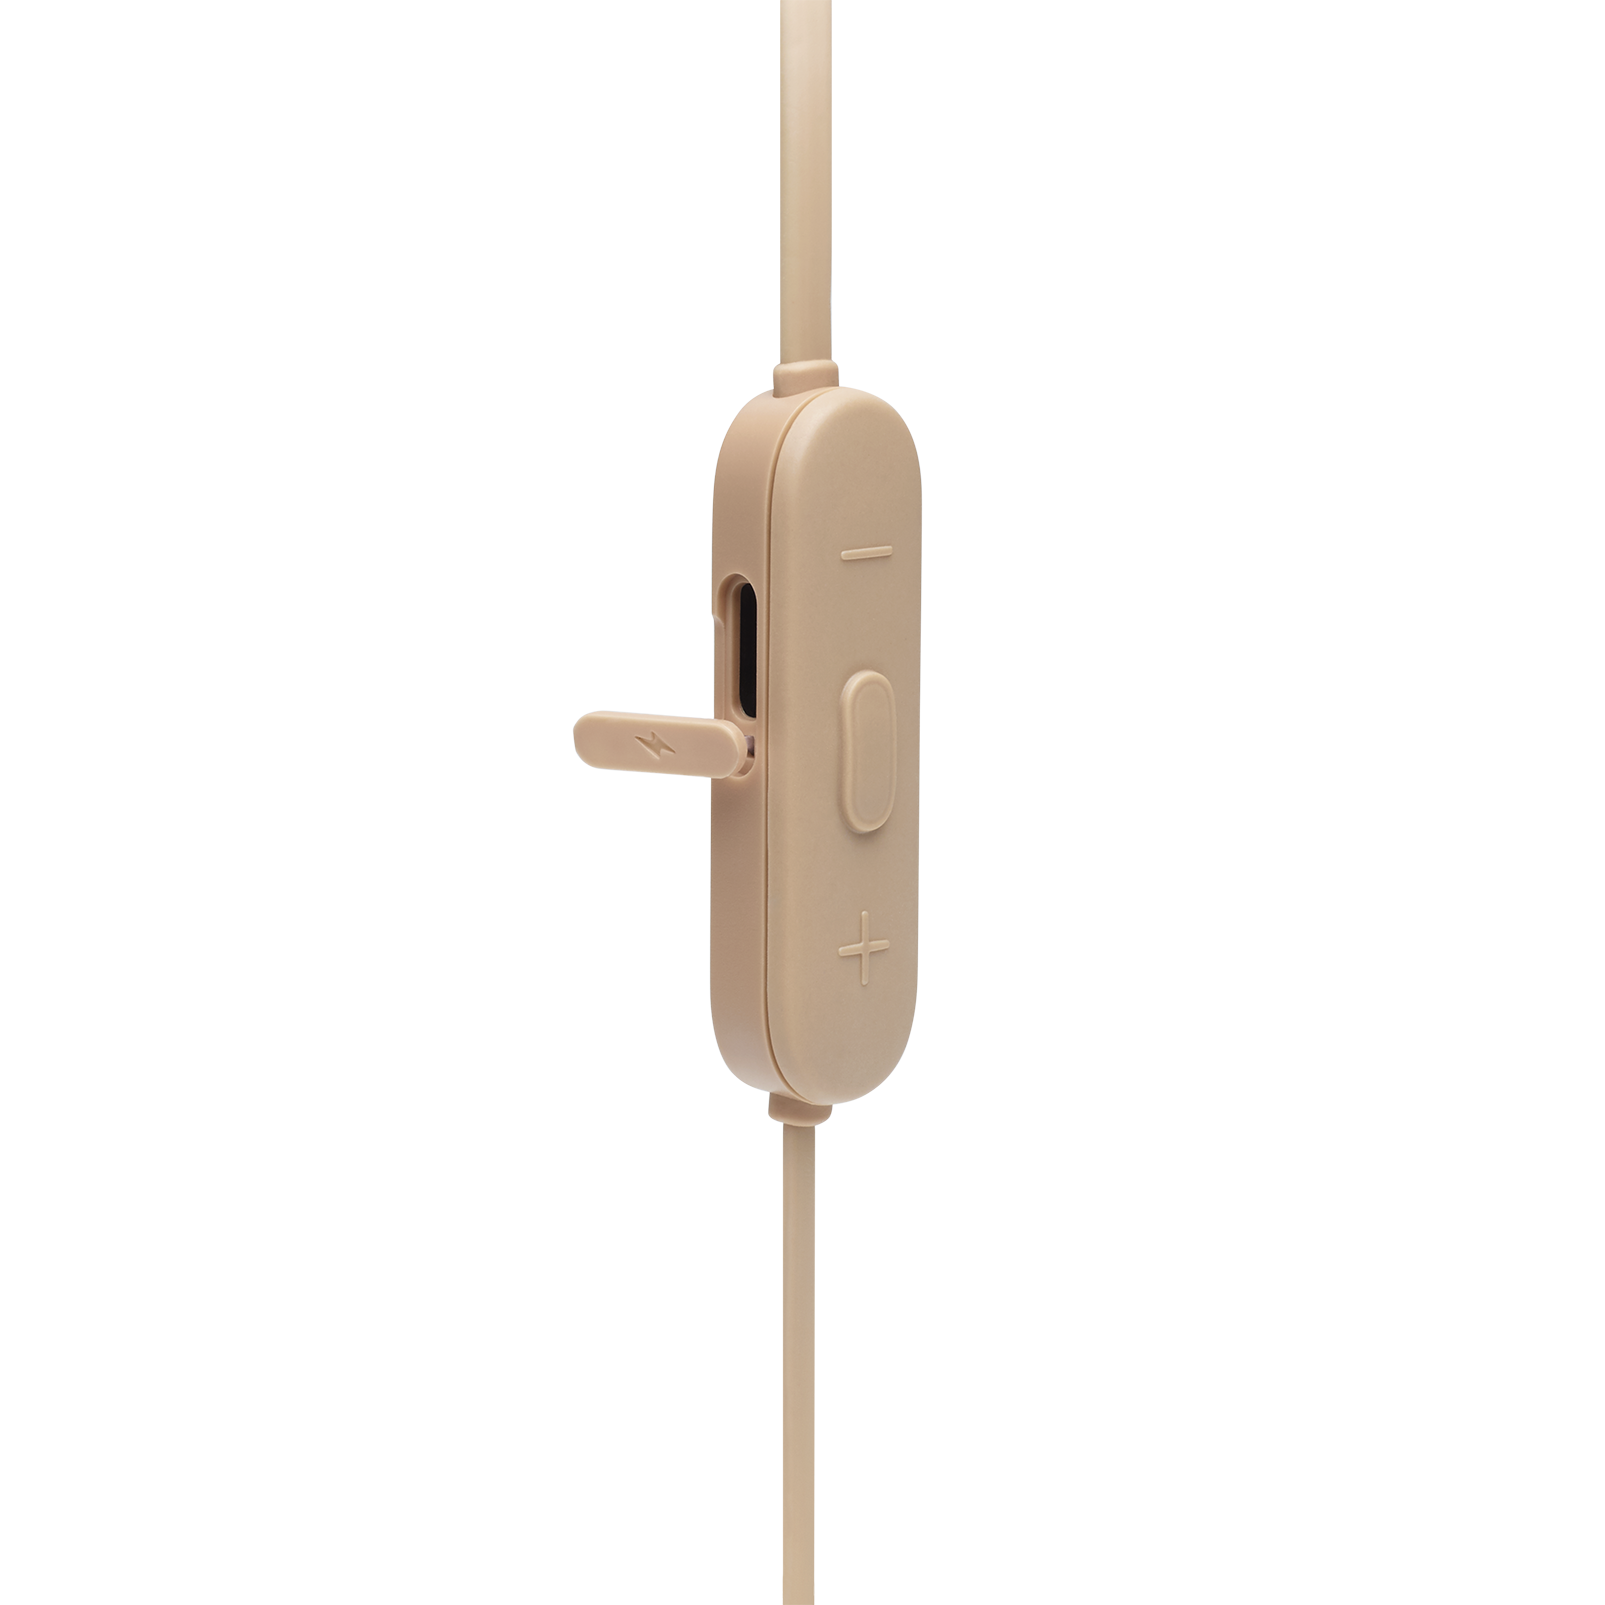 JBL TUNE 215BT - Champagne Gold - Wireless Earbud headphones - Detailshot 2